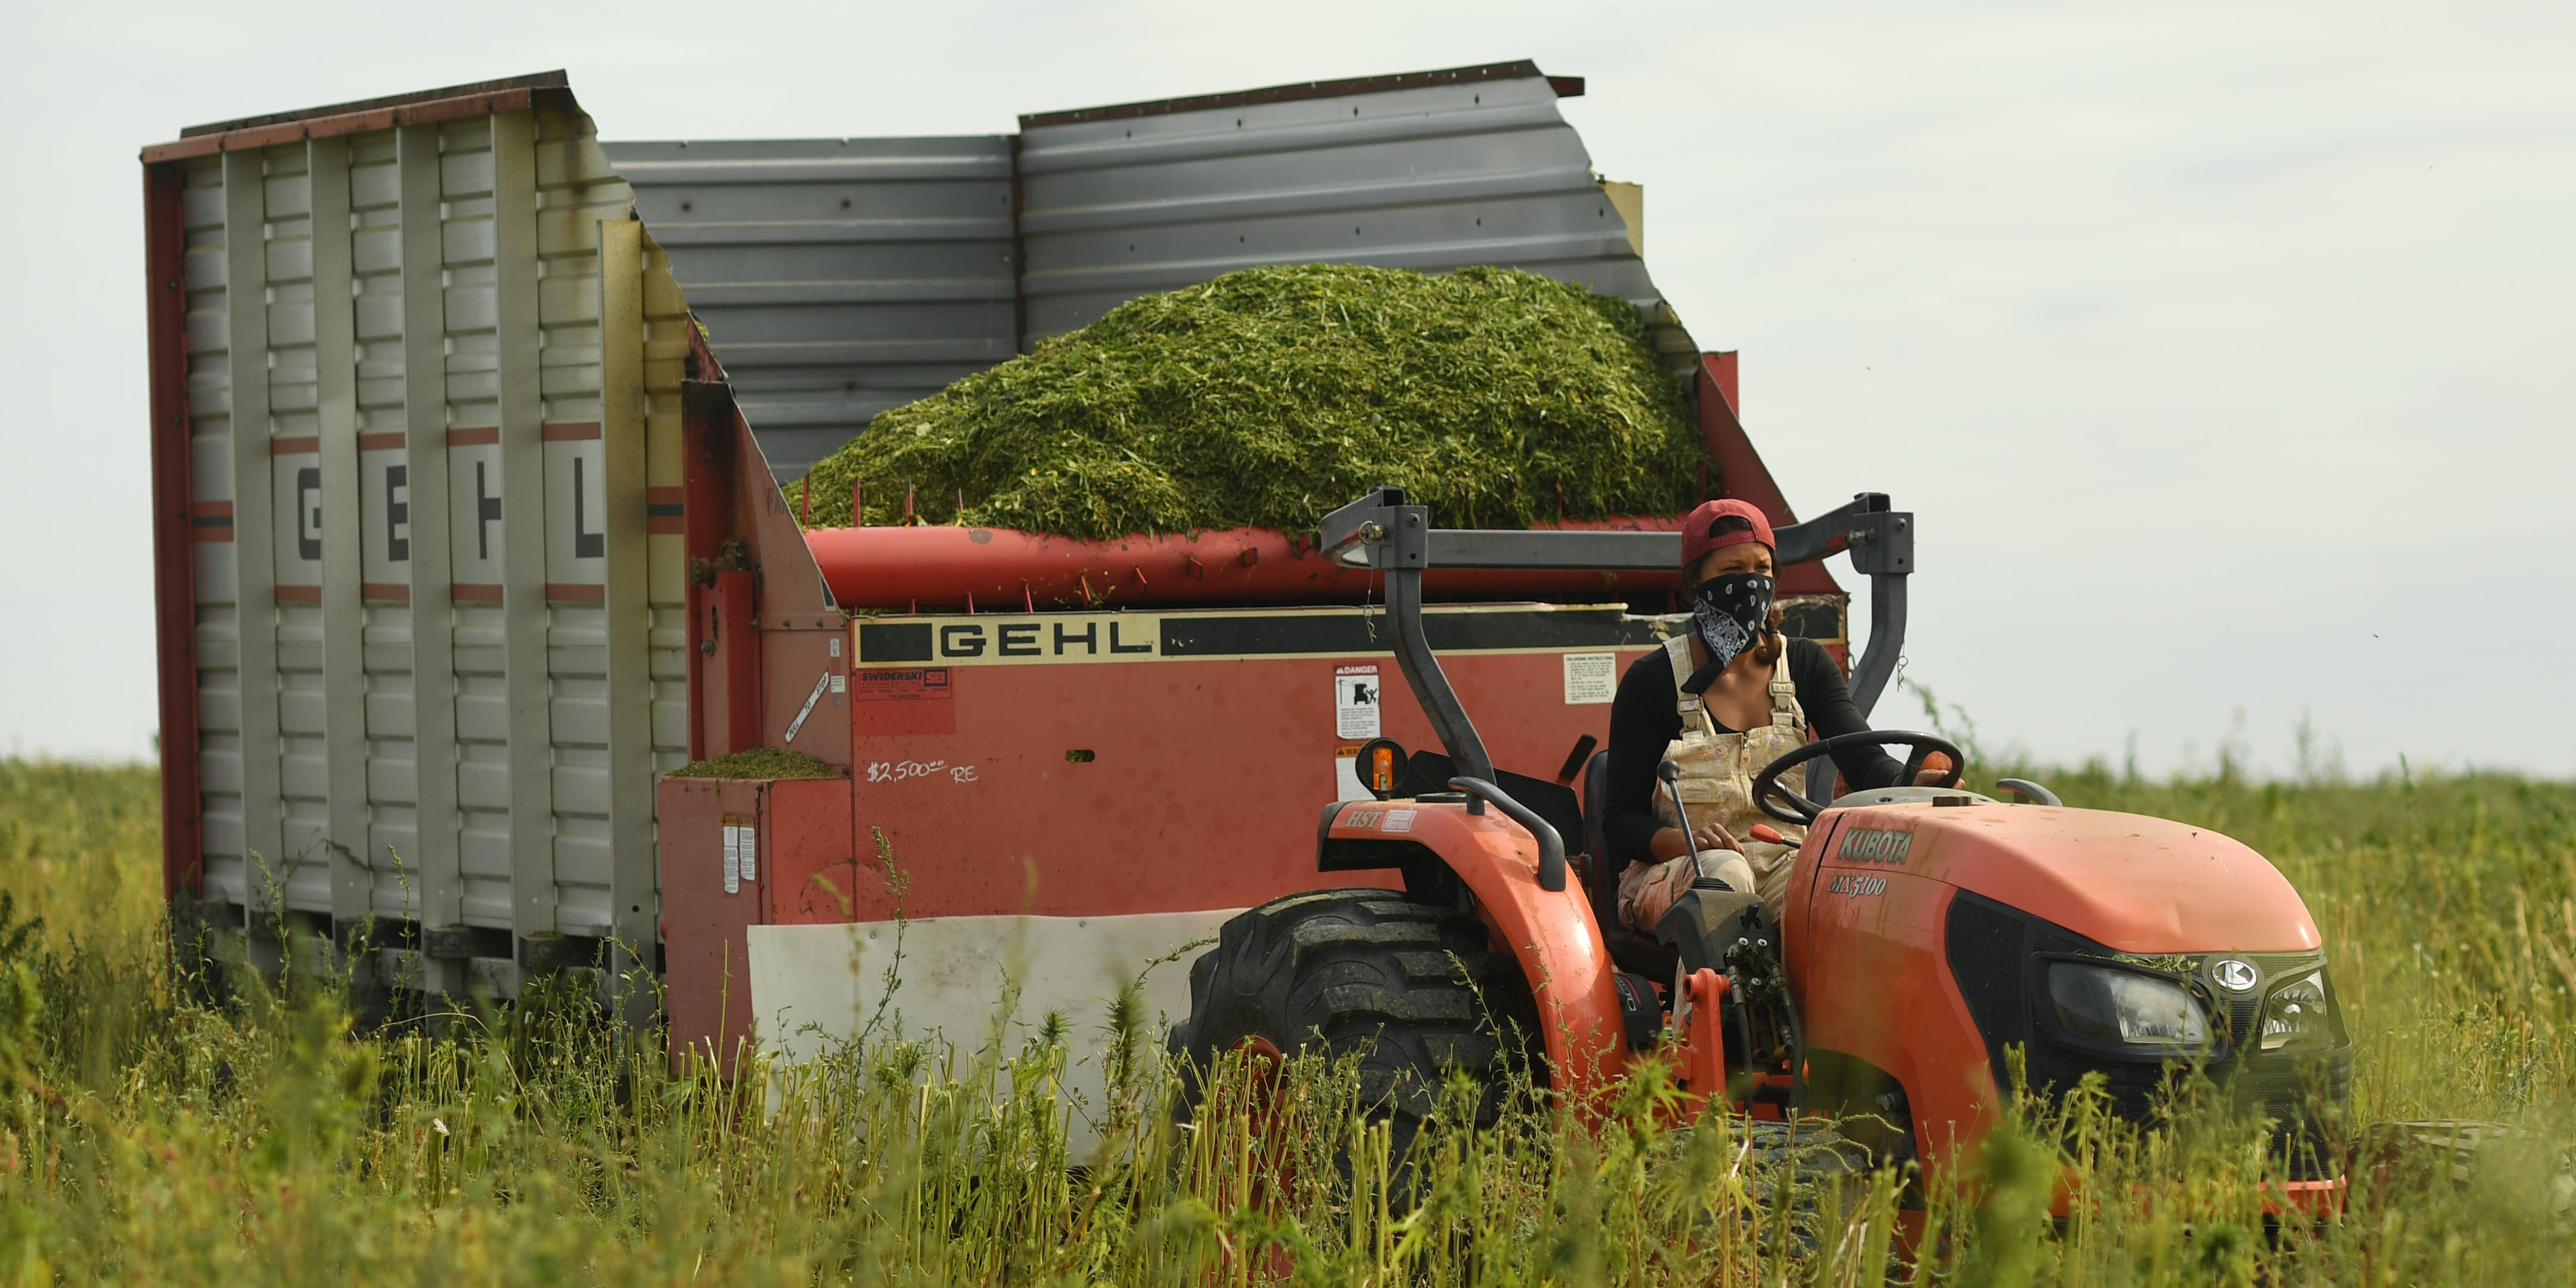 EATON, CO - SEPTEMBER 5: Shami Coleman, co-owner of Colorado Cultivars Hemp Farm brings in a load of hemp that was harvested on September 5, 2017 in Eaton, Colorado. The Senate's Farm Bill to Legalize Hemp Bans Farmers with Cannabis Convictions